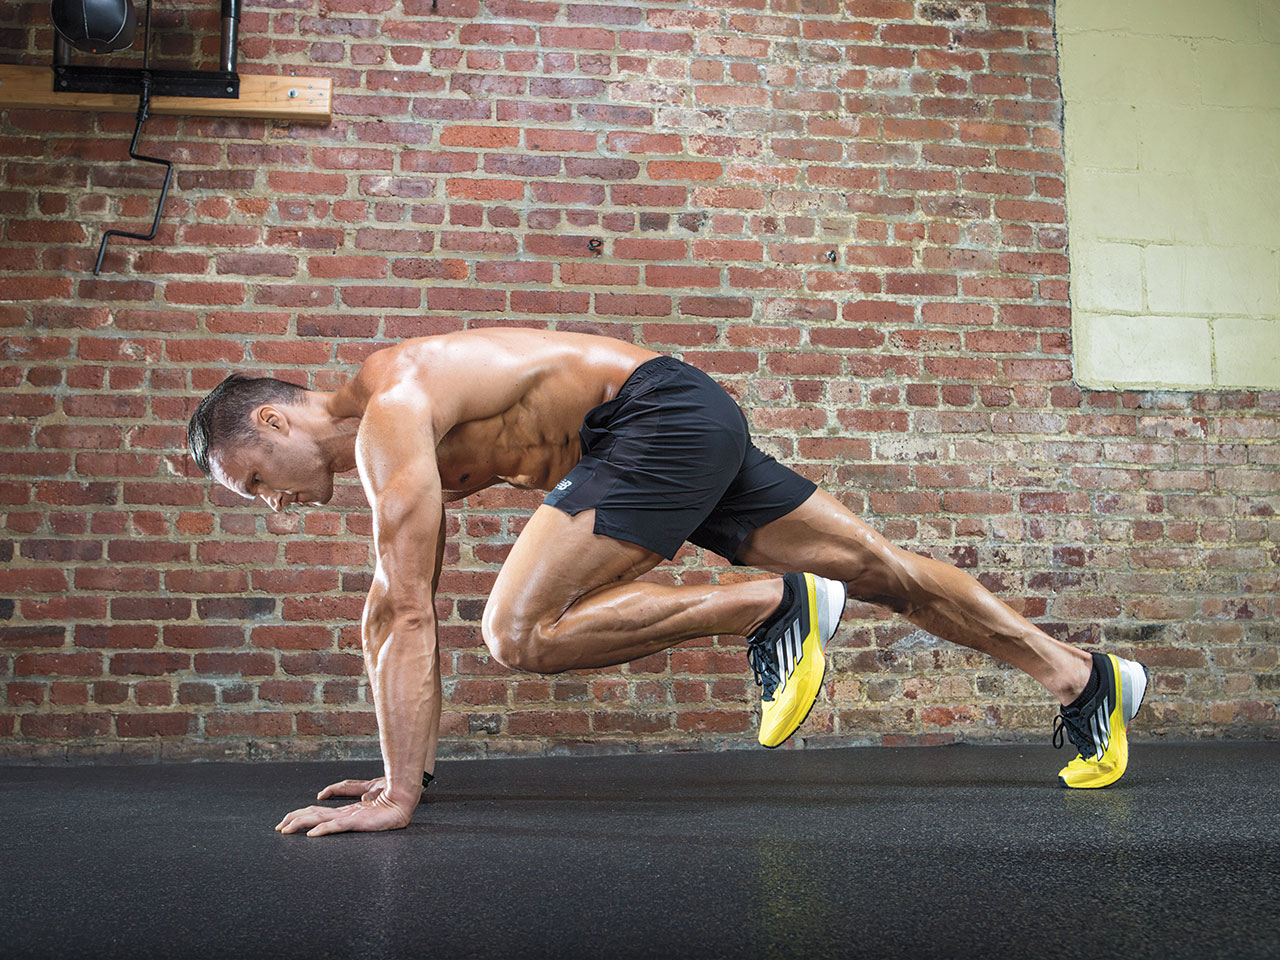 10 At Home Abs Workouts To Get Six Pack Circuit Workout Cardio Arms Legs 3 Core Shred